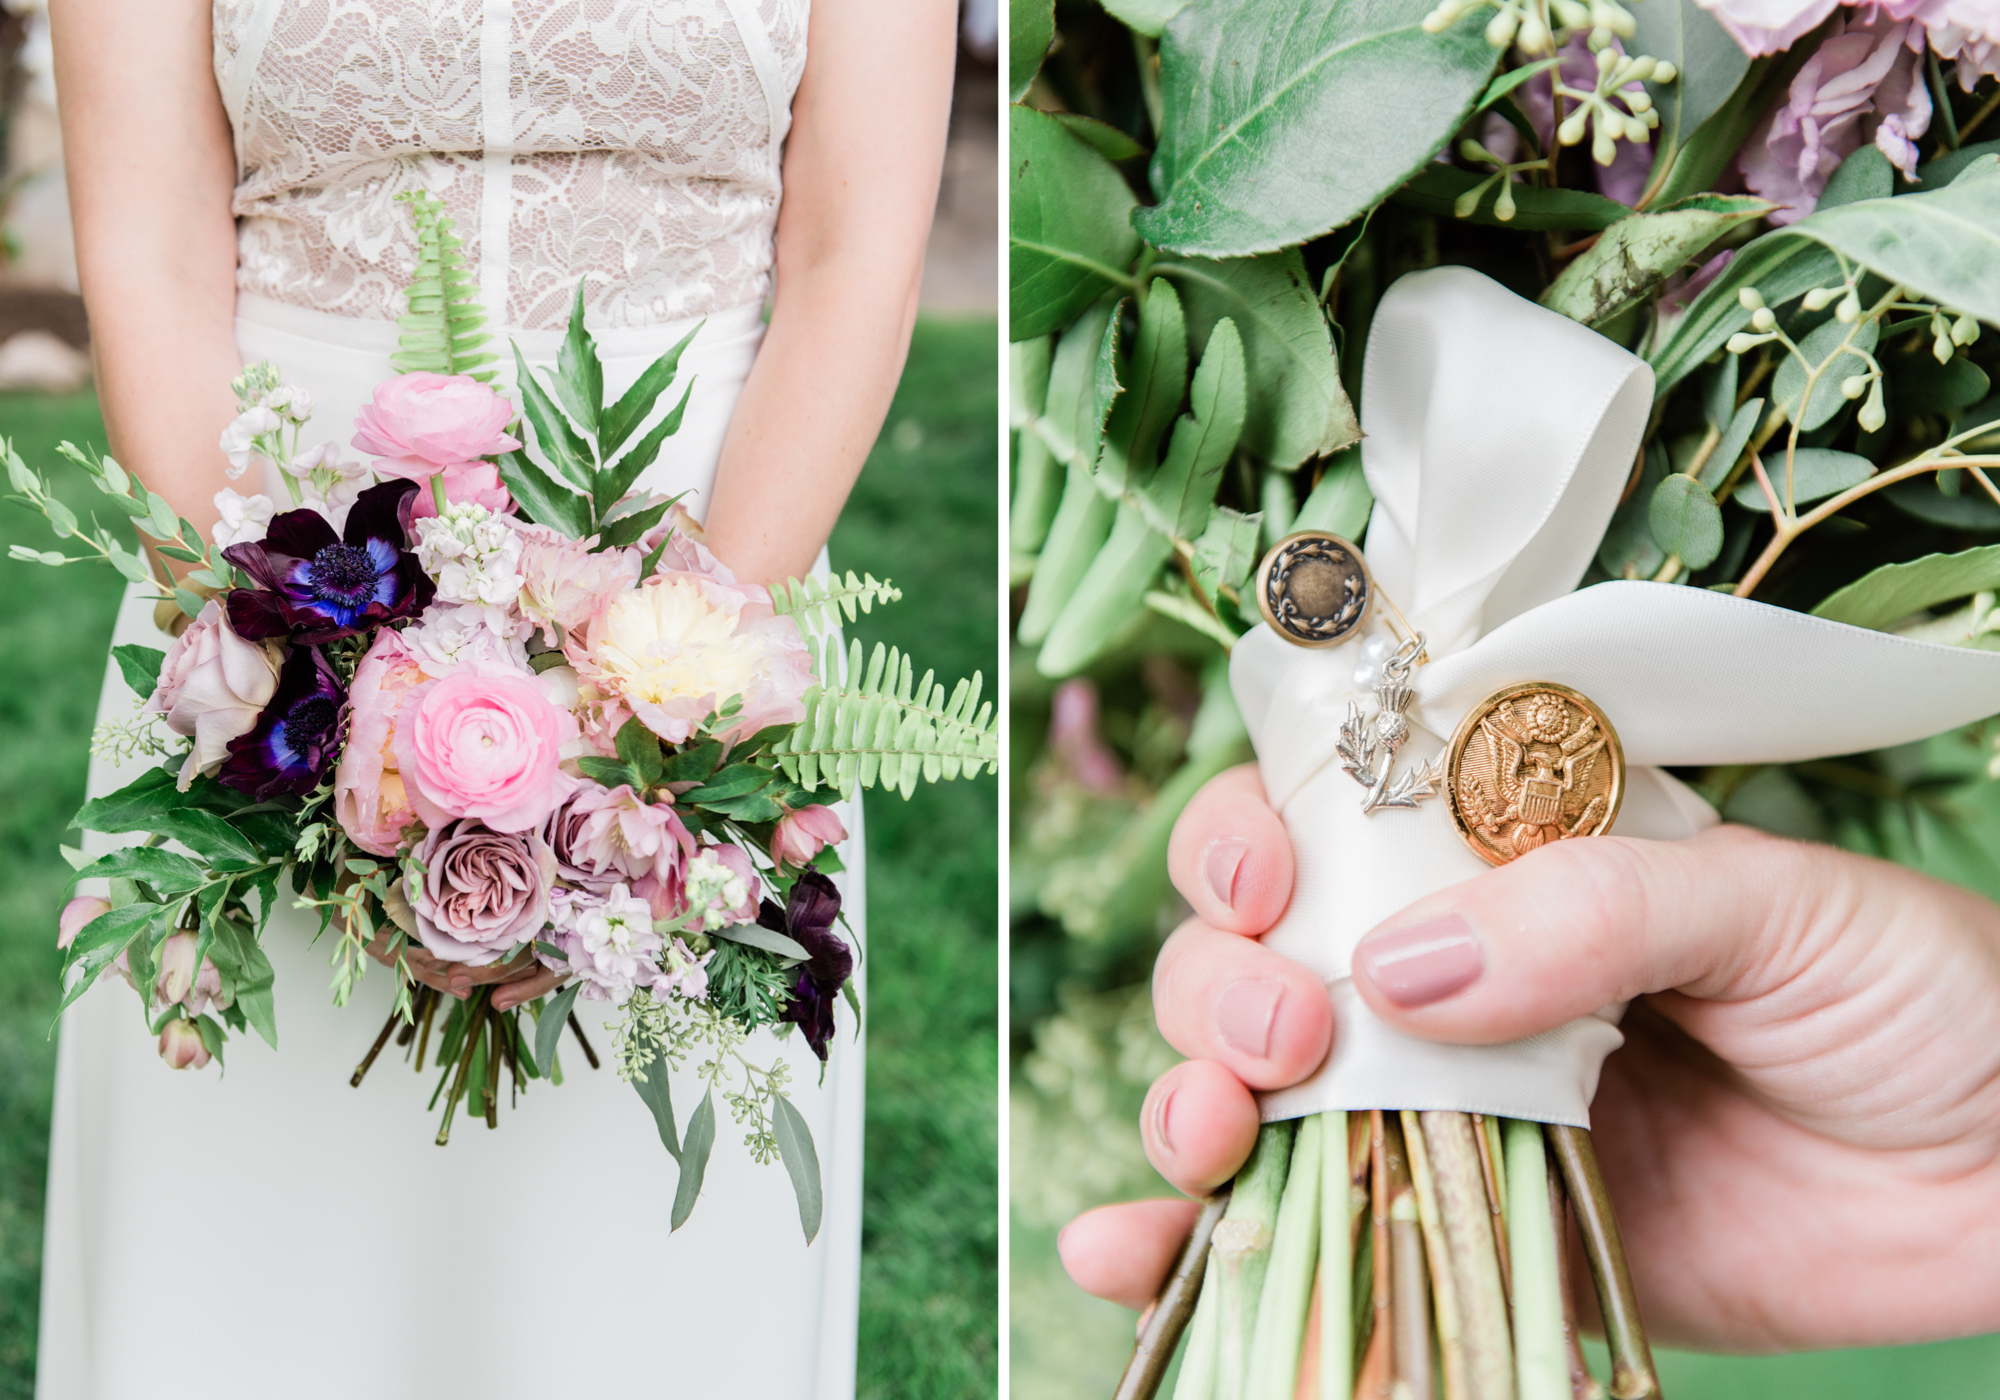 Bridal Bouquet customized with personal touches.